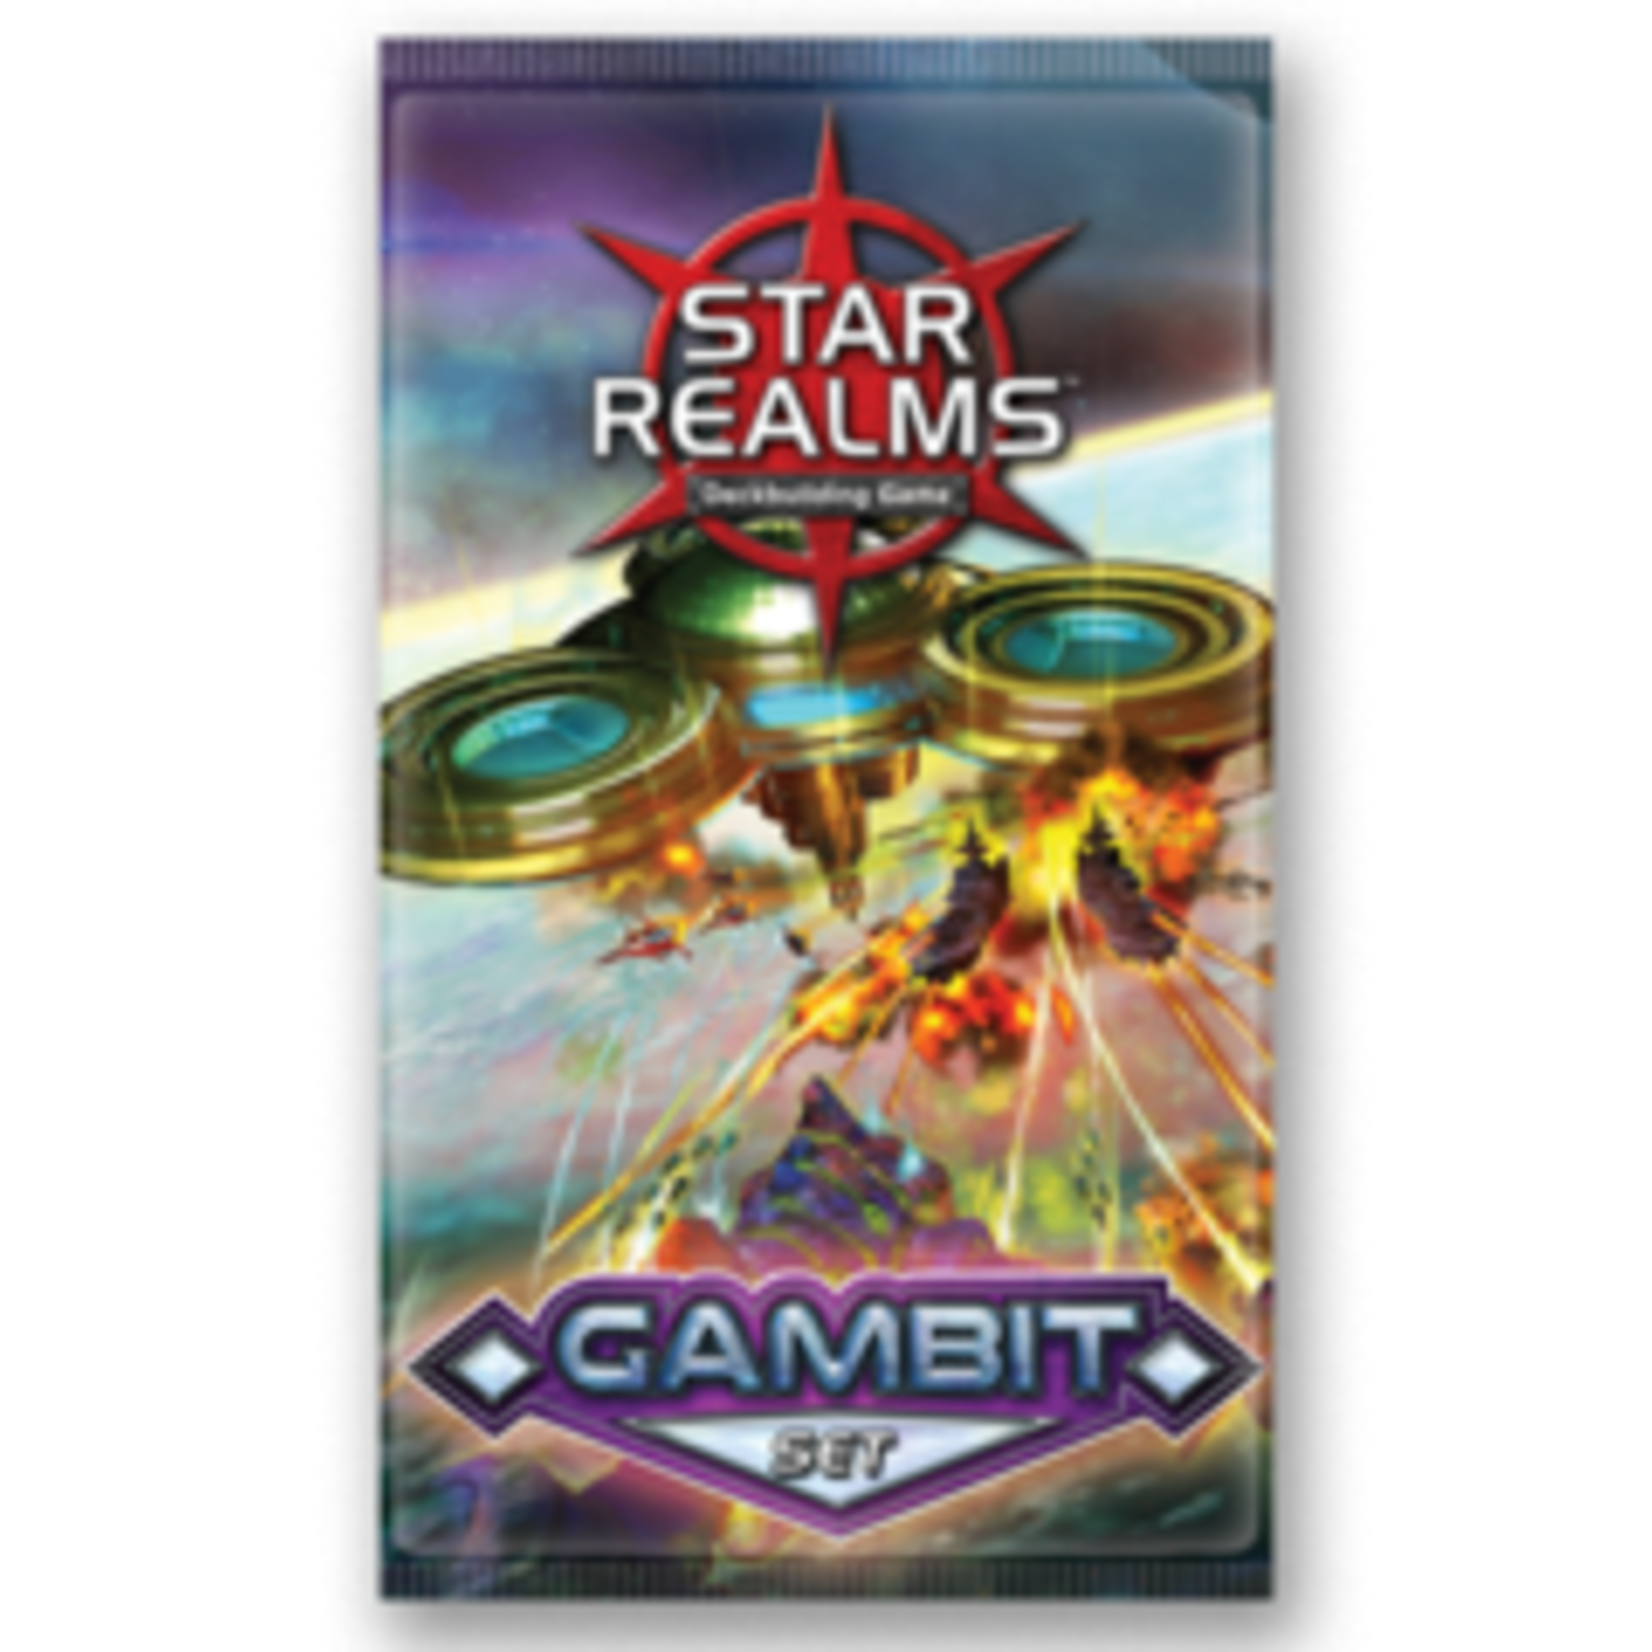 White Wizard Games Star Realms Gambit Expansion Pack